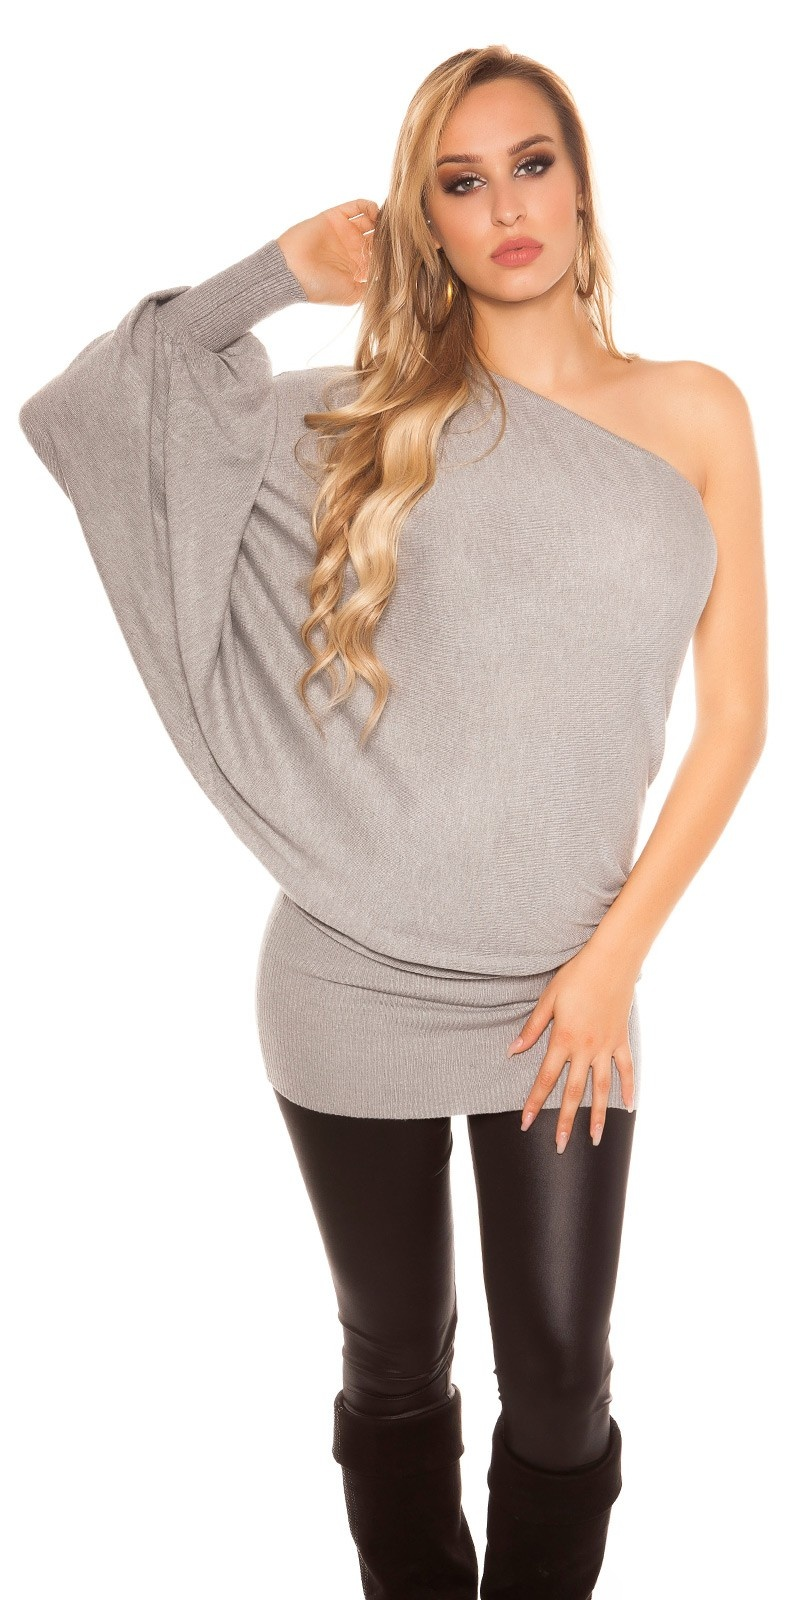 Sexy onesleeve-batlook-Longsweater? Minidress? Grey